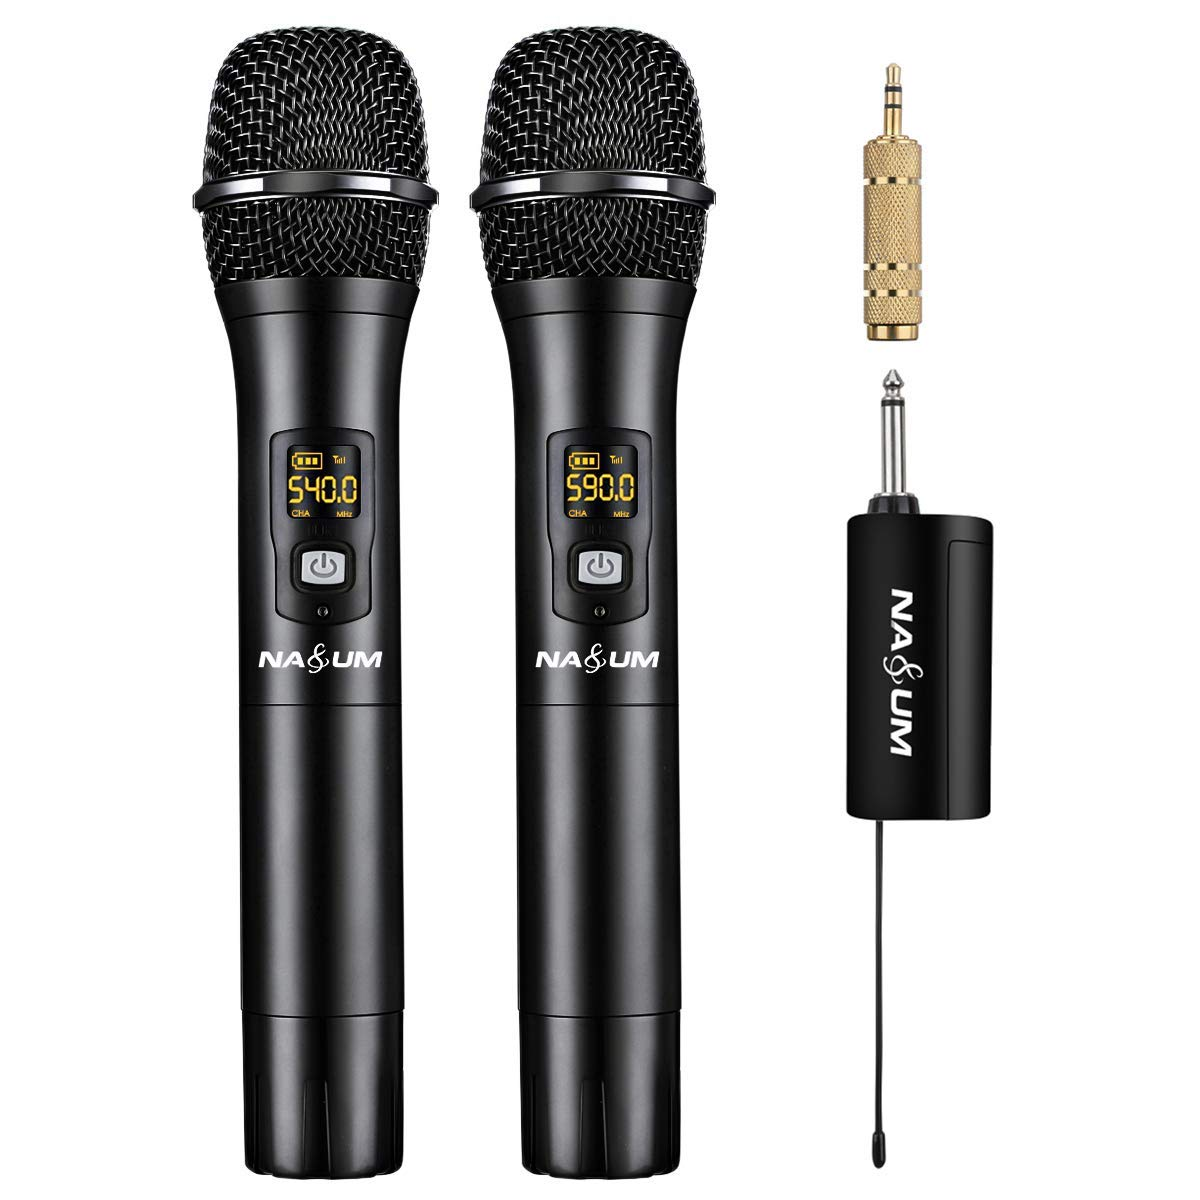 NASUM Wireless Karaoke Microphone, Professional UHF Dual Channel Metal Dynamic Cordless Microphone, Handheld Wireless Mic with Rechargeable Receiver, for Singing, Karaoke, Wedding, Church by NASUM